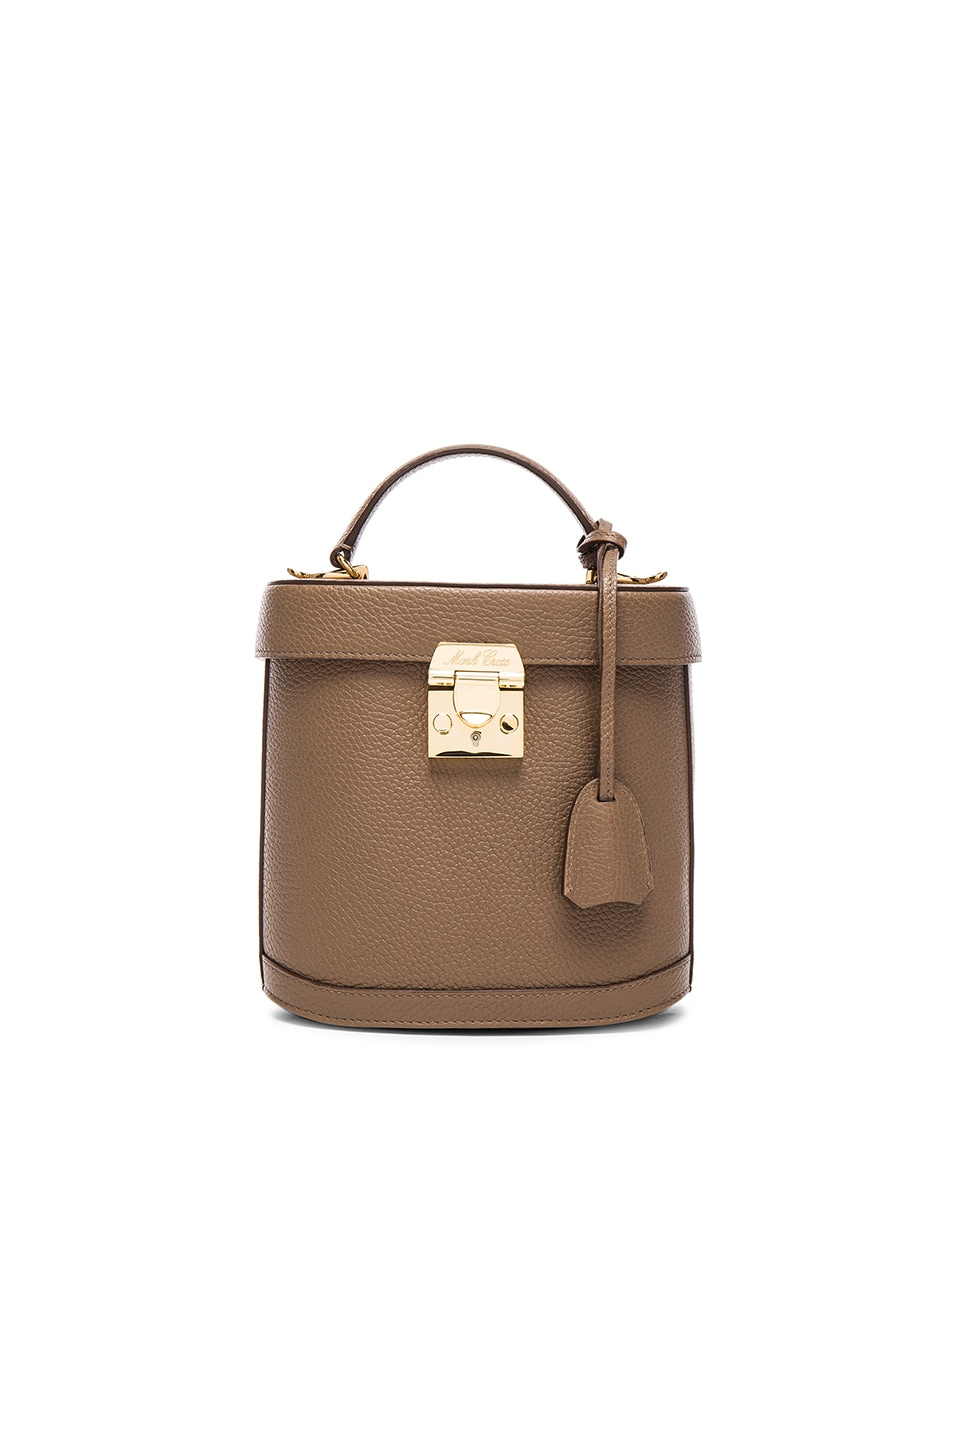 Image 1 of Mark Cross Benchley Bag in Mink Pebble